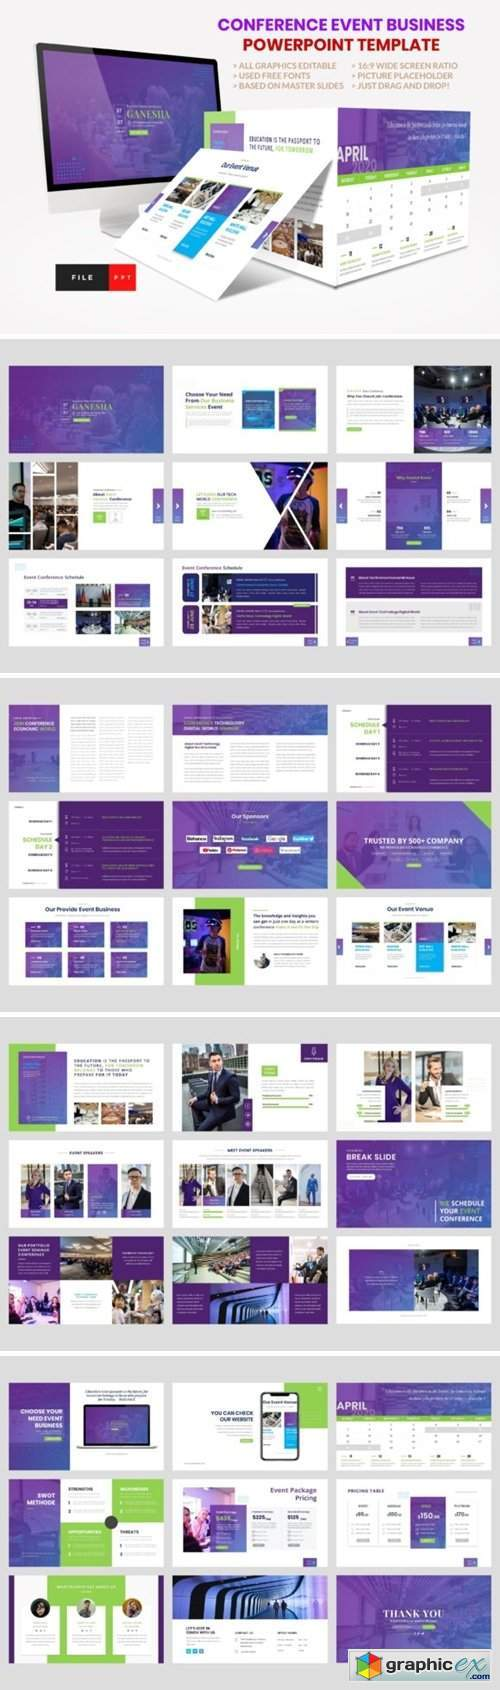 Conference - Event Seminar PowerPoint